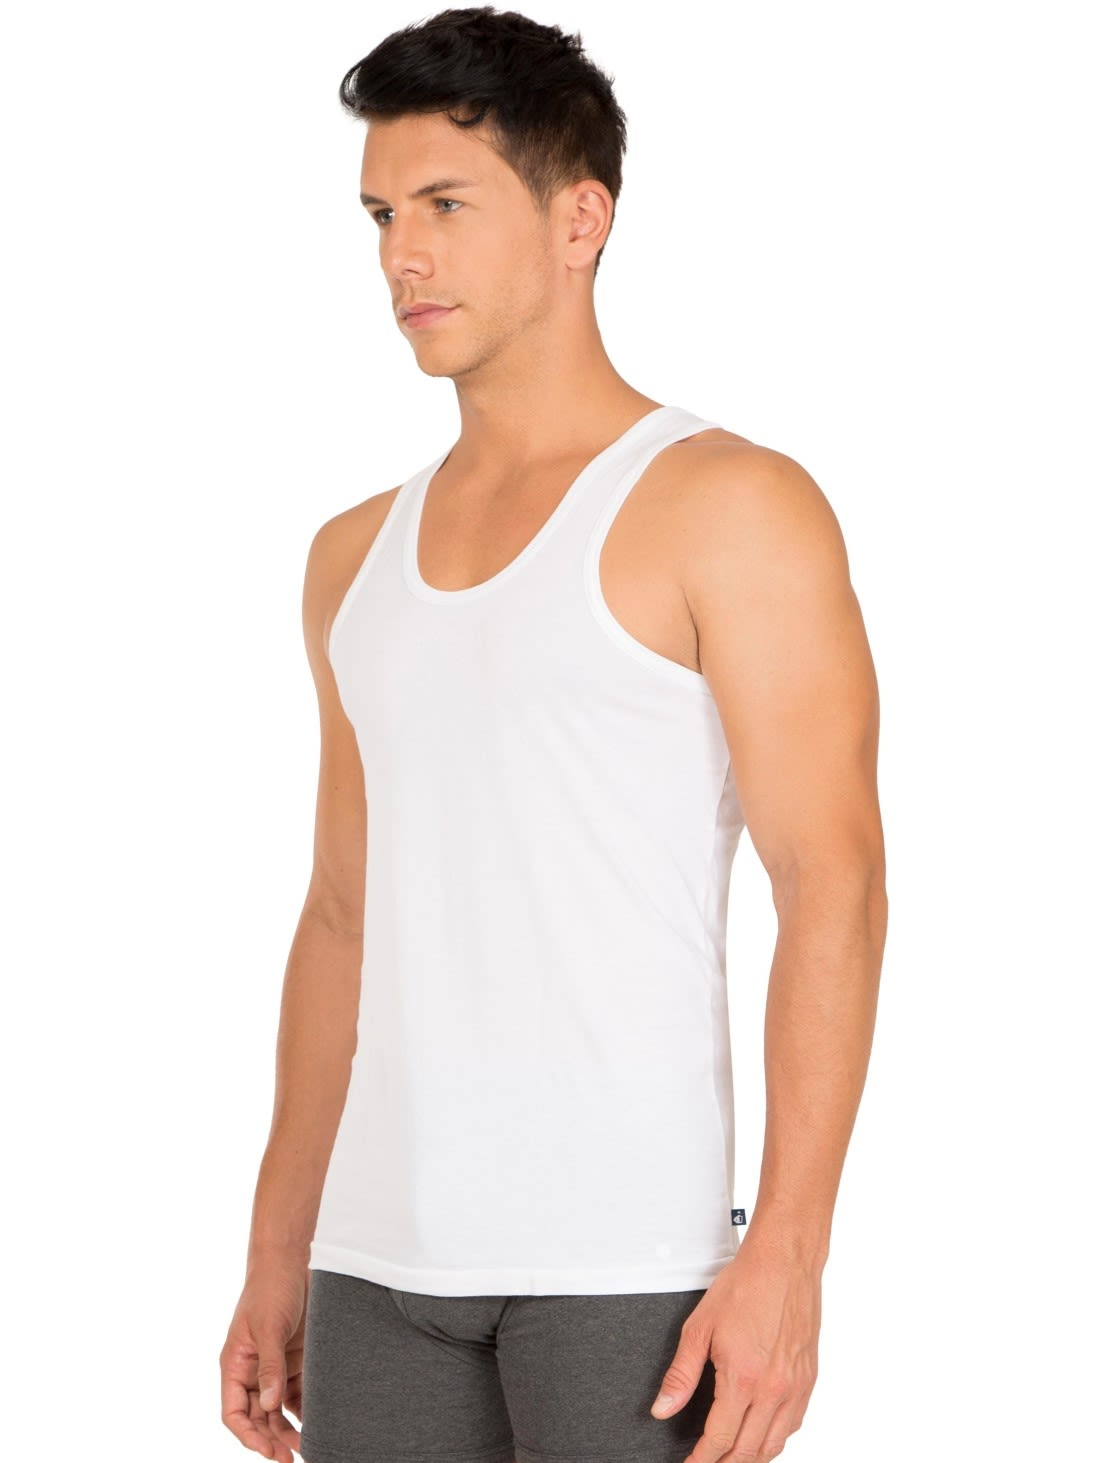 80995b9f Jockey Men Innerwear Tops | White Basic Undershirt Pack of 2